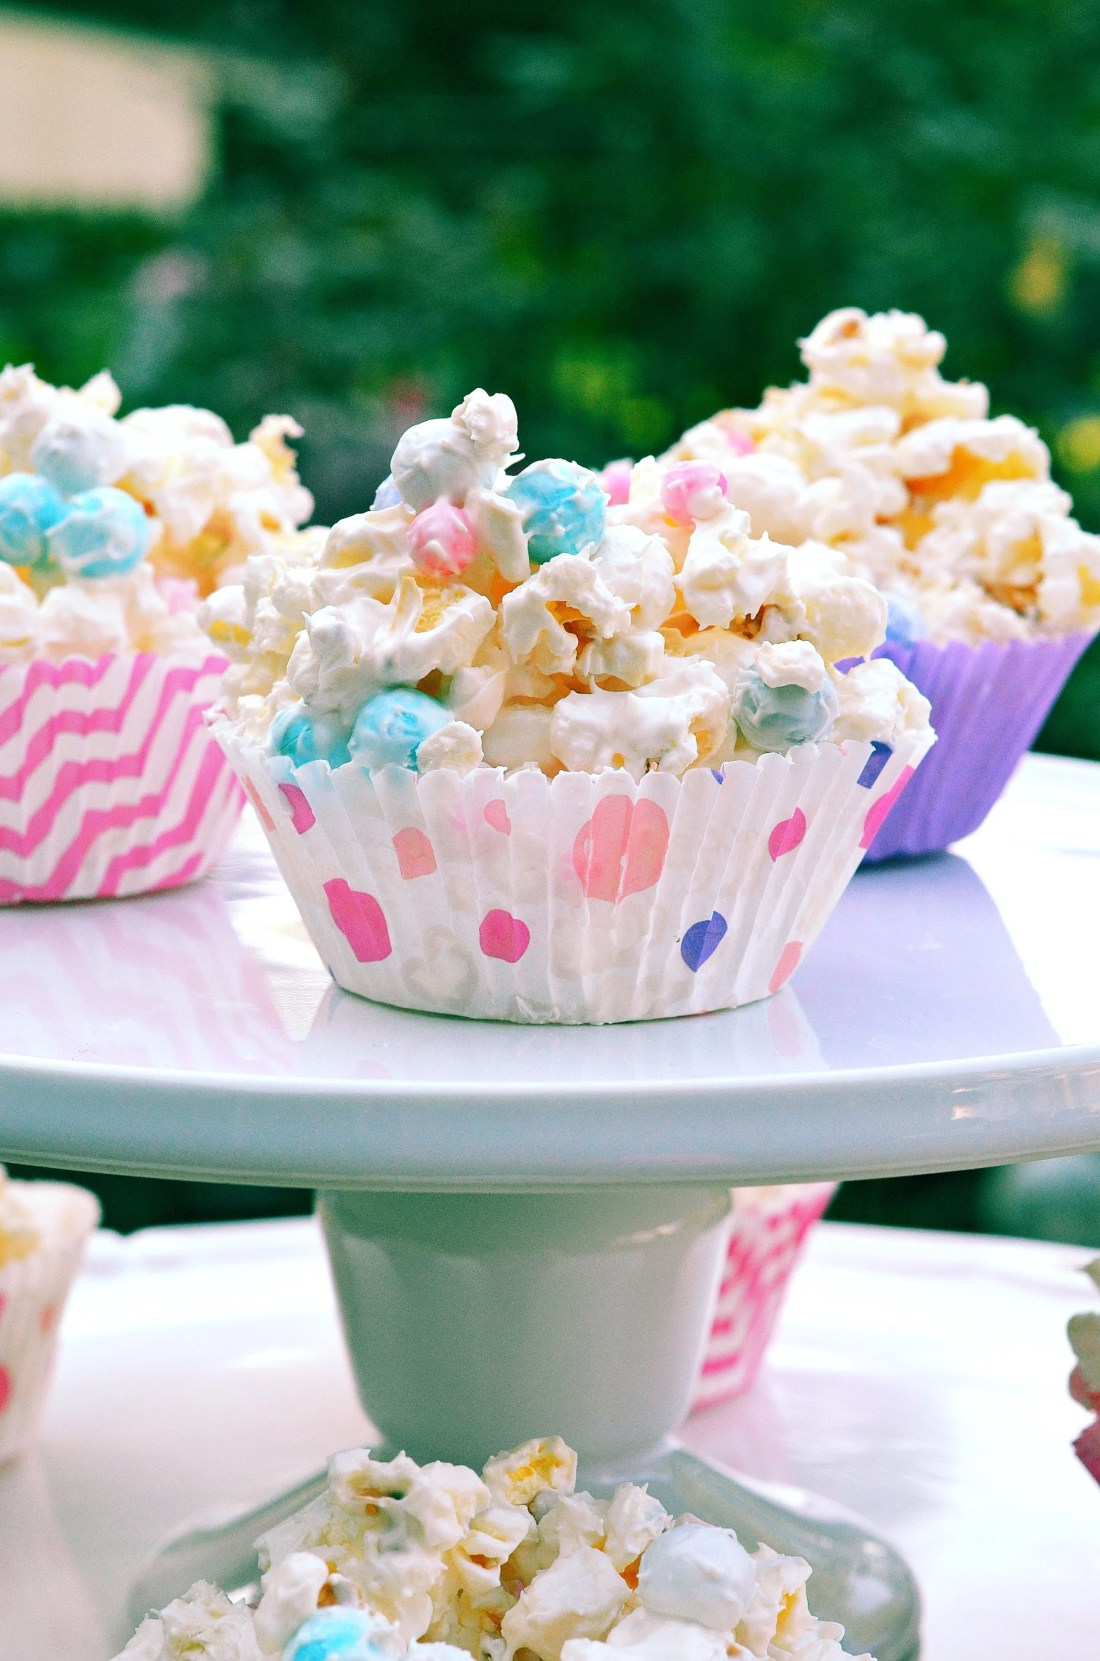 Bake up some special sweets for your favorite charities. My Unicorn Popcorn is always a hit at our bake sales. It's easy to make and the kids love it.